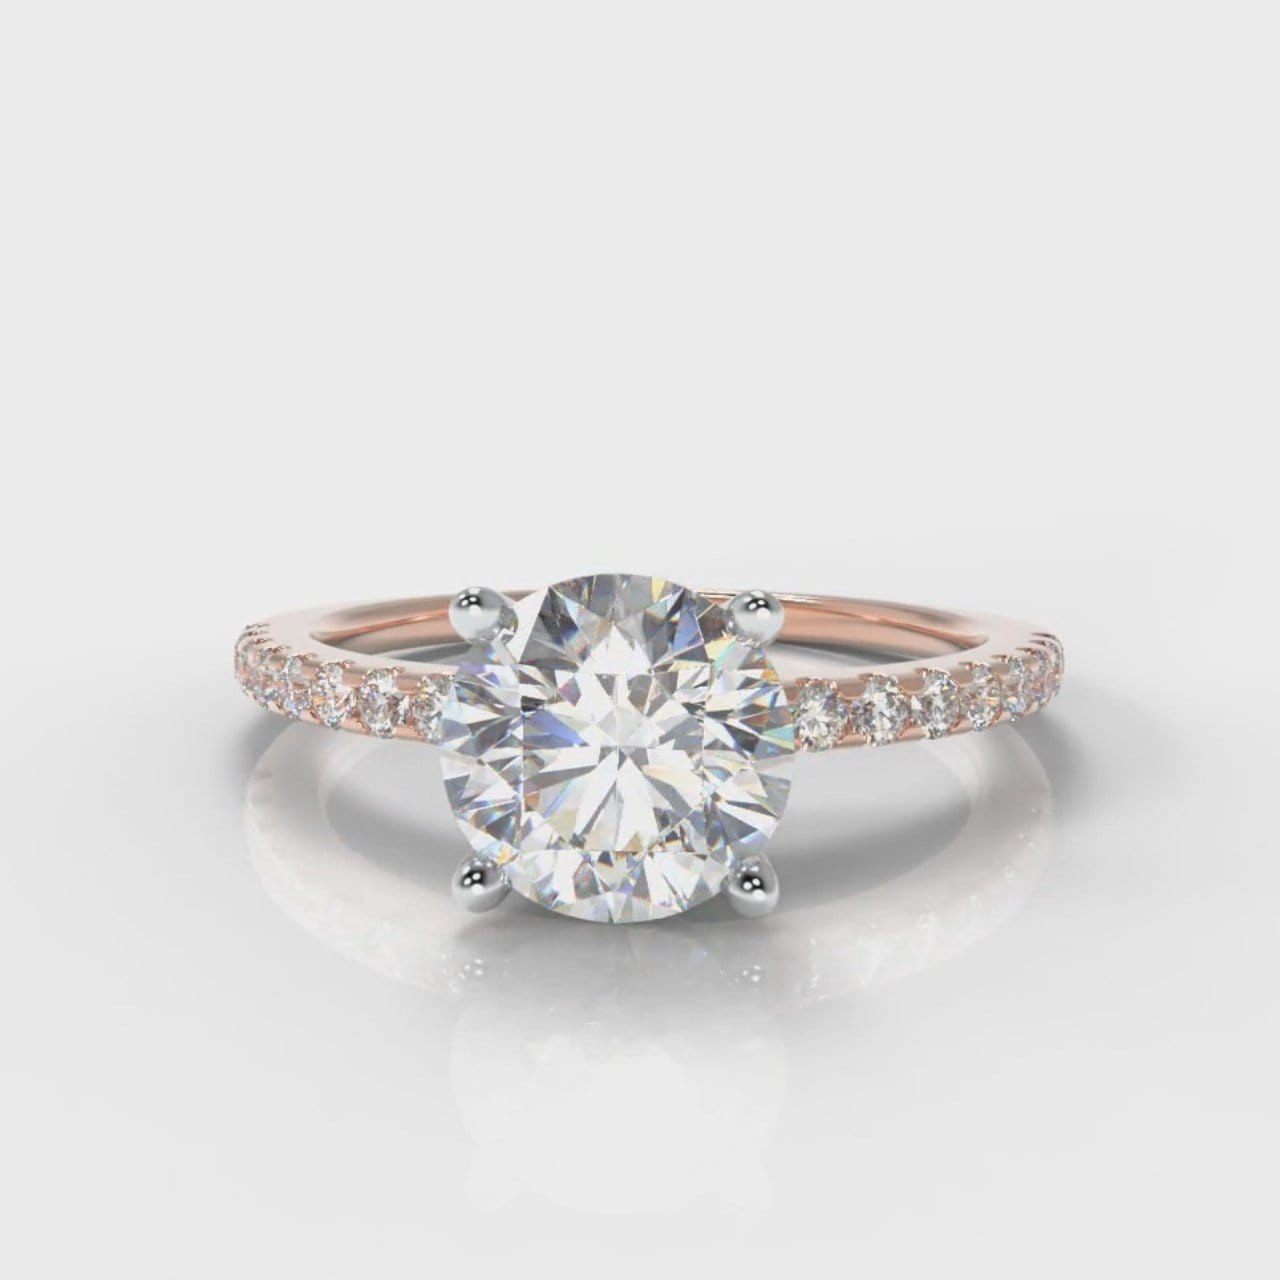 Petite Micropavé Round Brilliant Cut Diamond Engagement Ring - Rose Gold